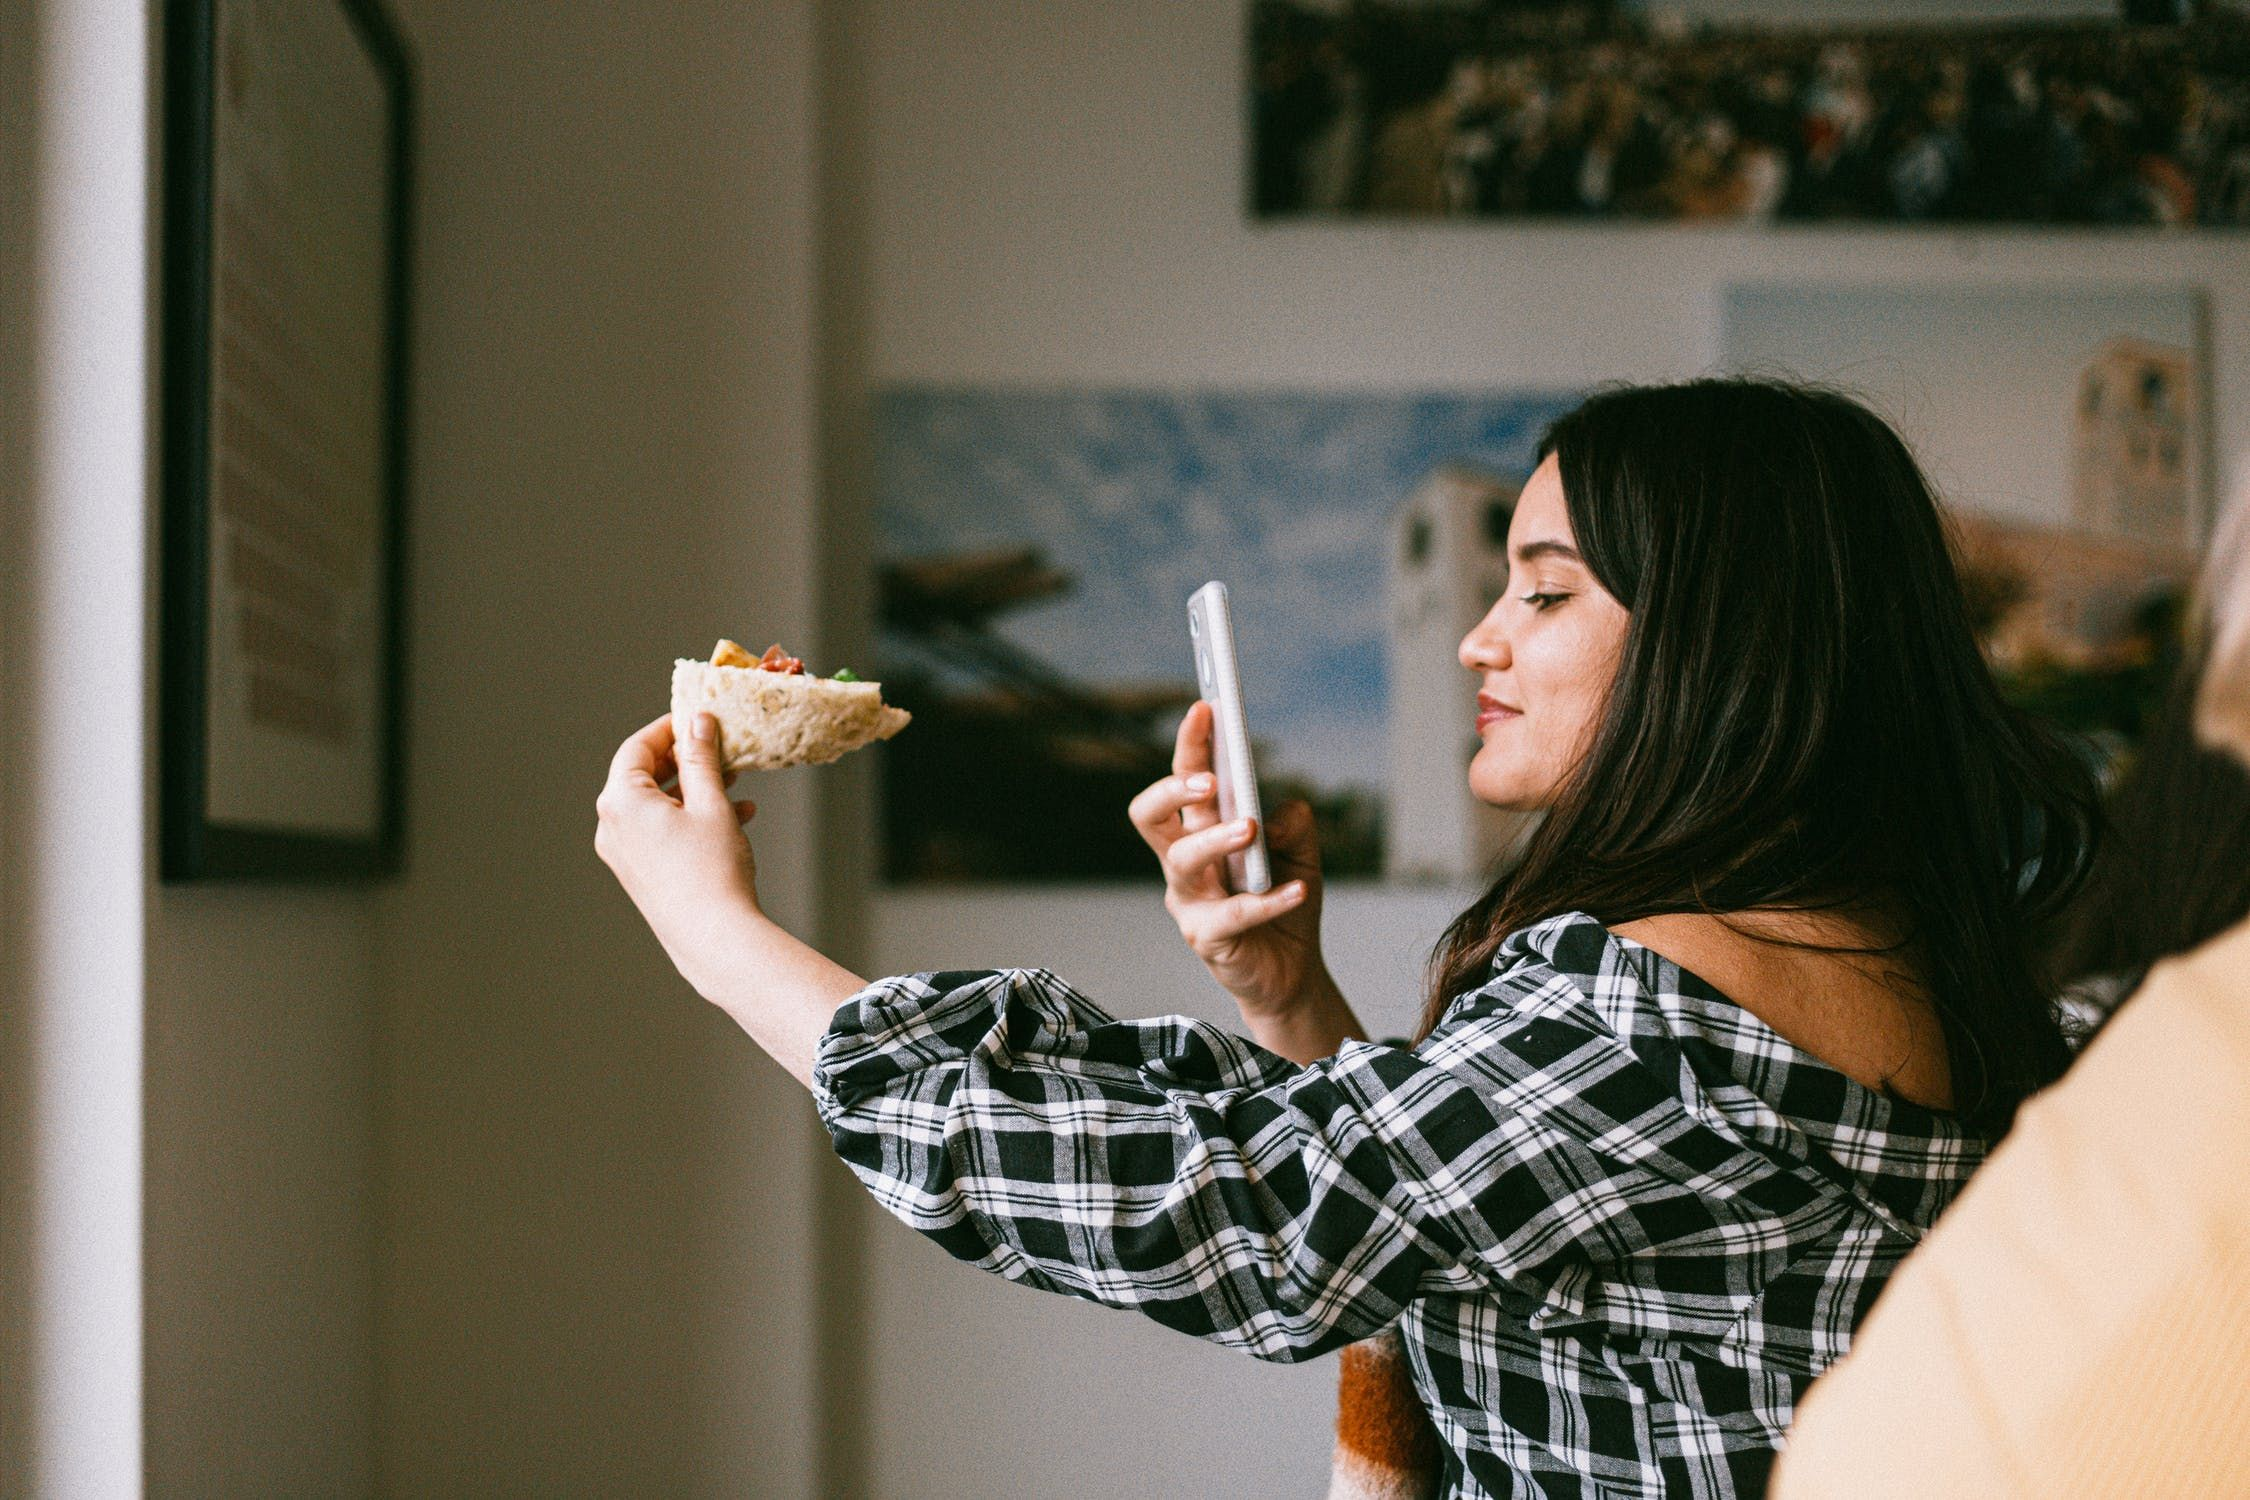 A girl taking a selfie of herself eating a sandwich